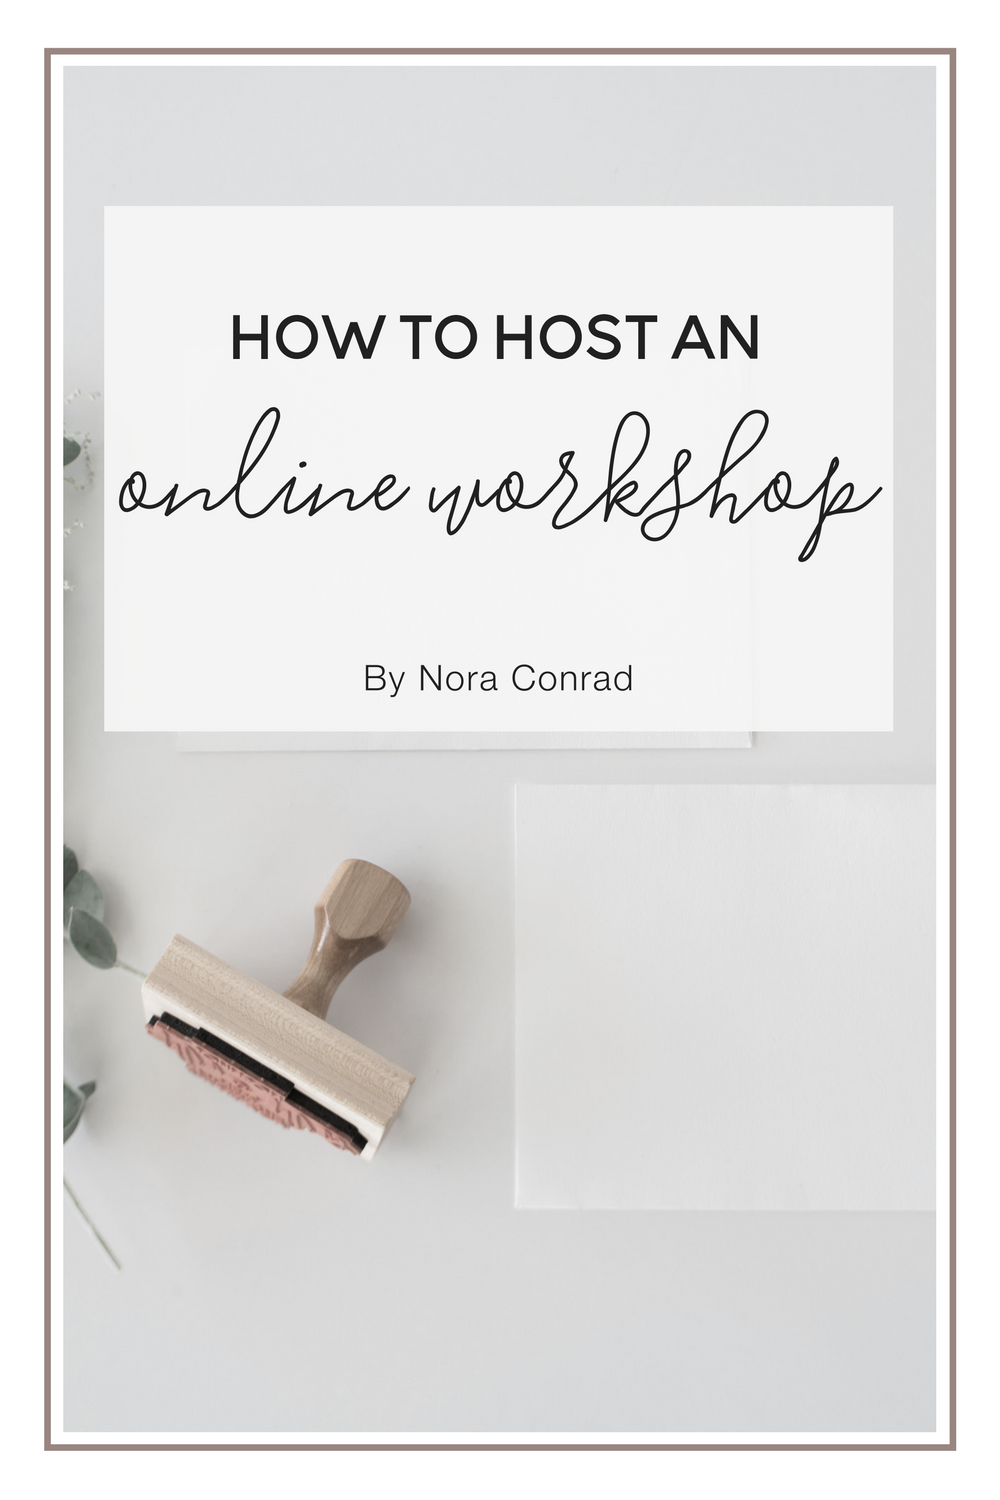 You've probably heard of a workshop or a webinar. They're blowing up right now in the small business world as a fantastic way to get in front of your audience in an approachable and authentic way. In this post I'll show you extactly what programs I use, how I prep for a webinar and how I get an audience to show up.